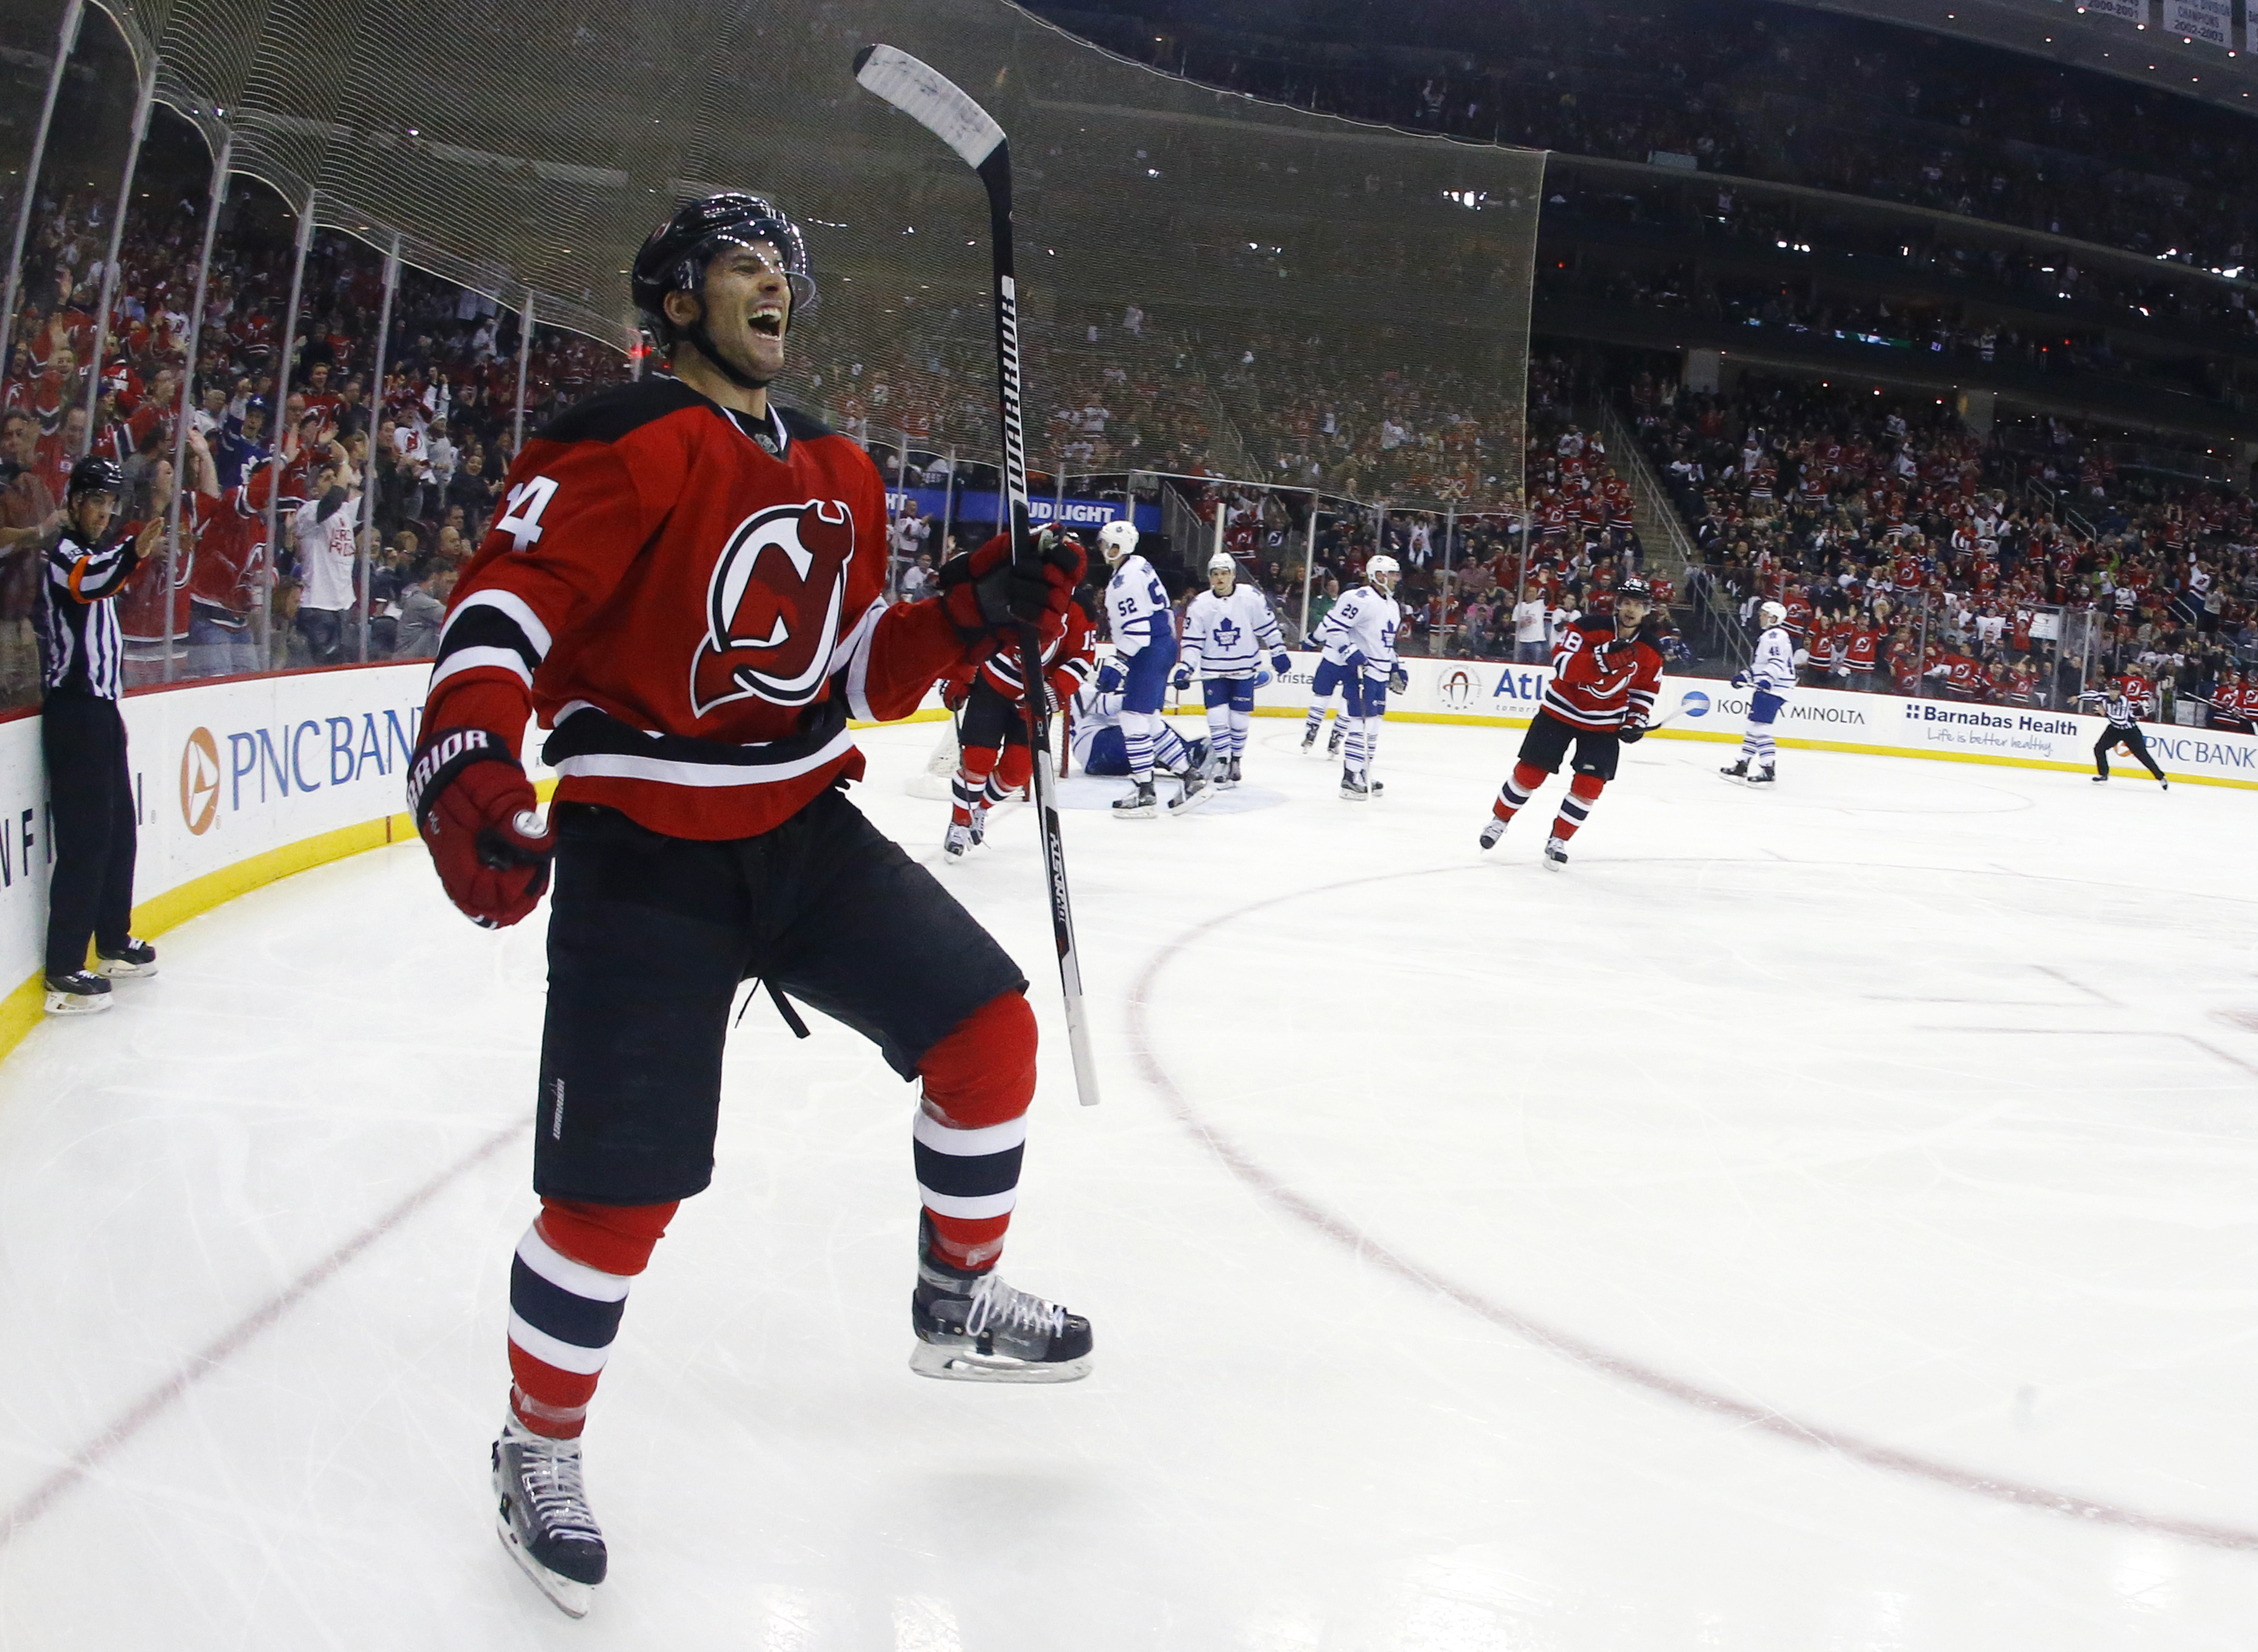 New Jersey Devils center Adam Henrique reacts after scoring a goal against the Toronto Maple Leafs during the second period of an NHL hockey game, Saturday, April 9, 2016, in Newark, N.J. (AP Photo/Julio Cortez)